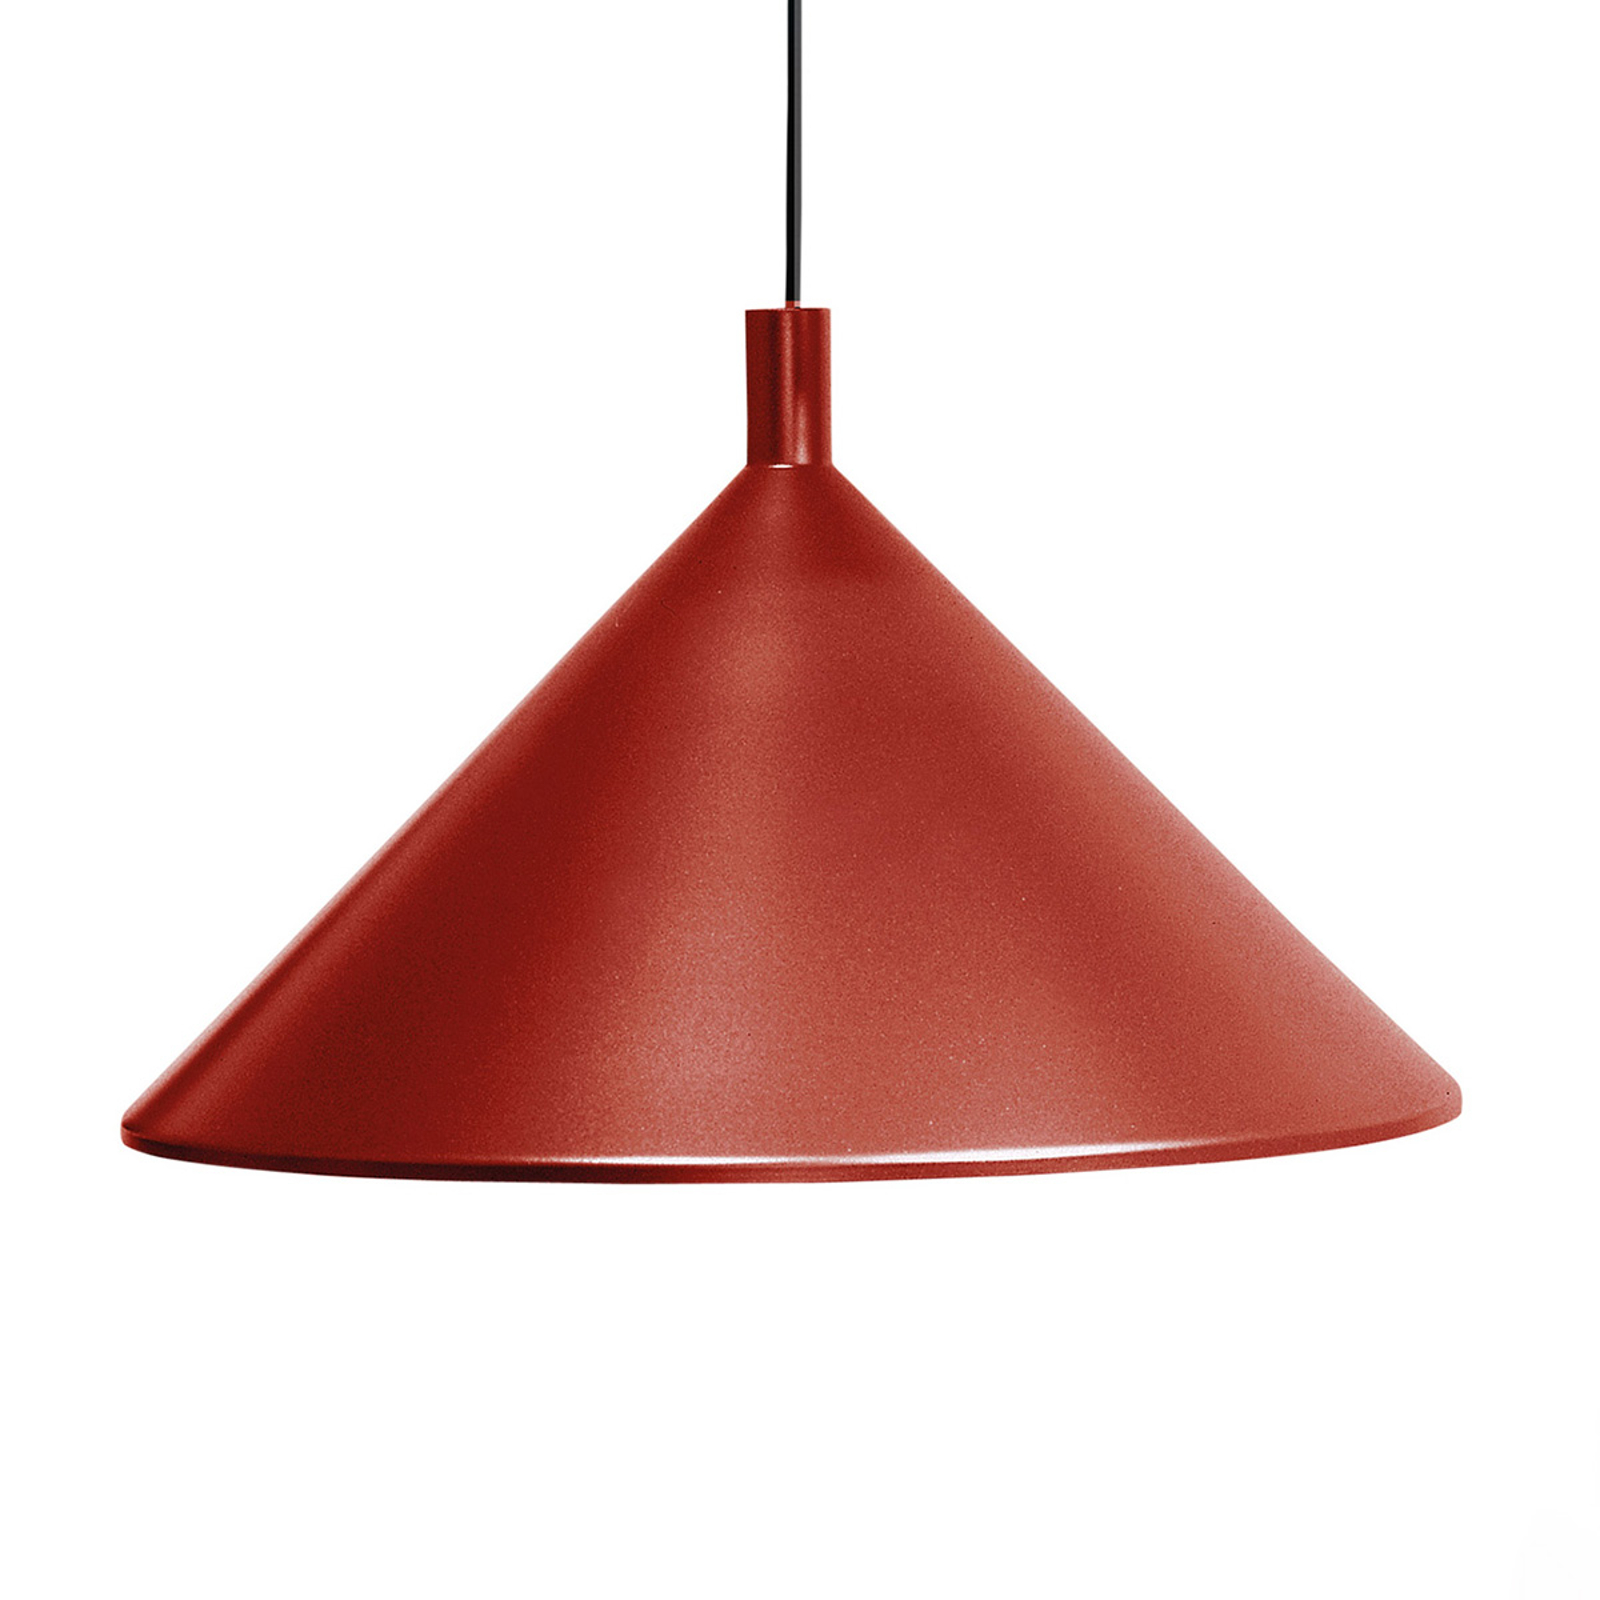 Martinelli Luce Cono hanglamp rood, Ø 30 cm